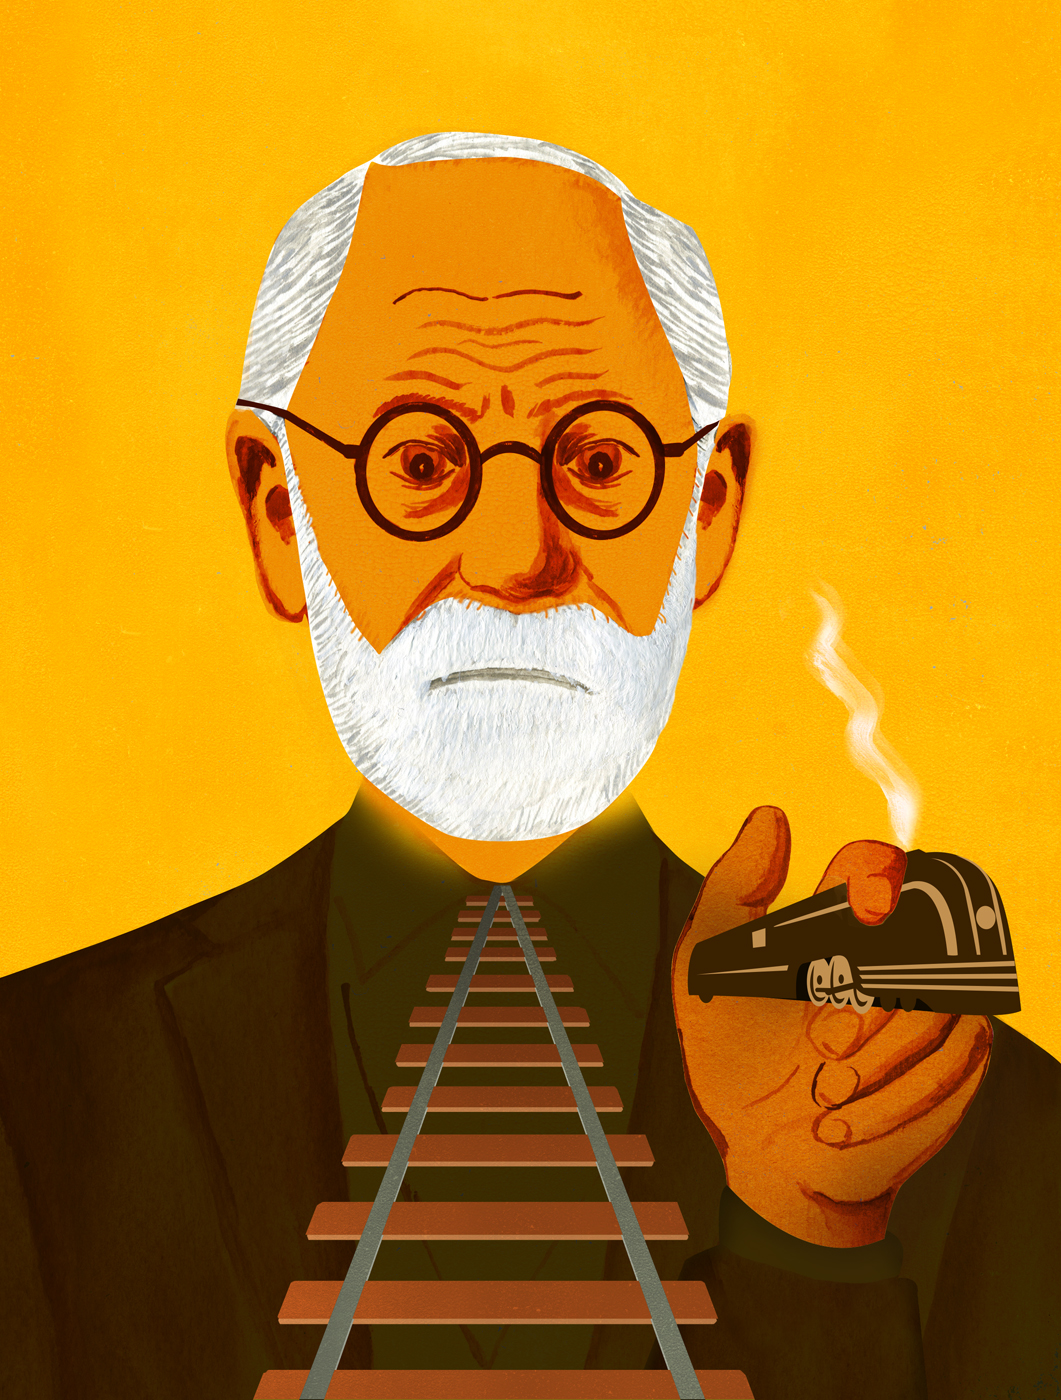 Sigmund Freud's fear of Train travel from Recipes for Good Luck: The Superstitions, Rituals, and Practices of Extraordinary People published by Chronicle Books